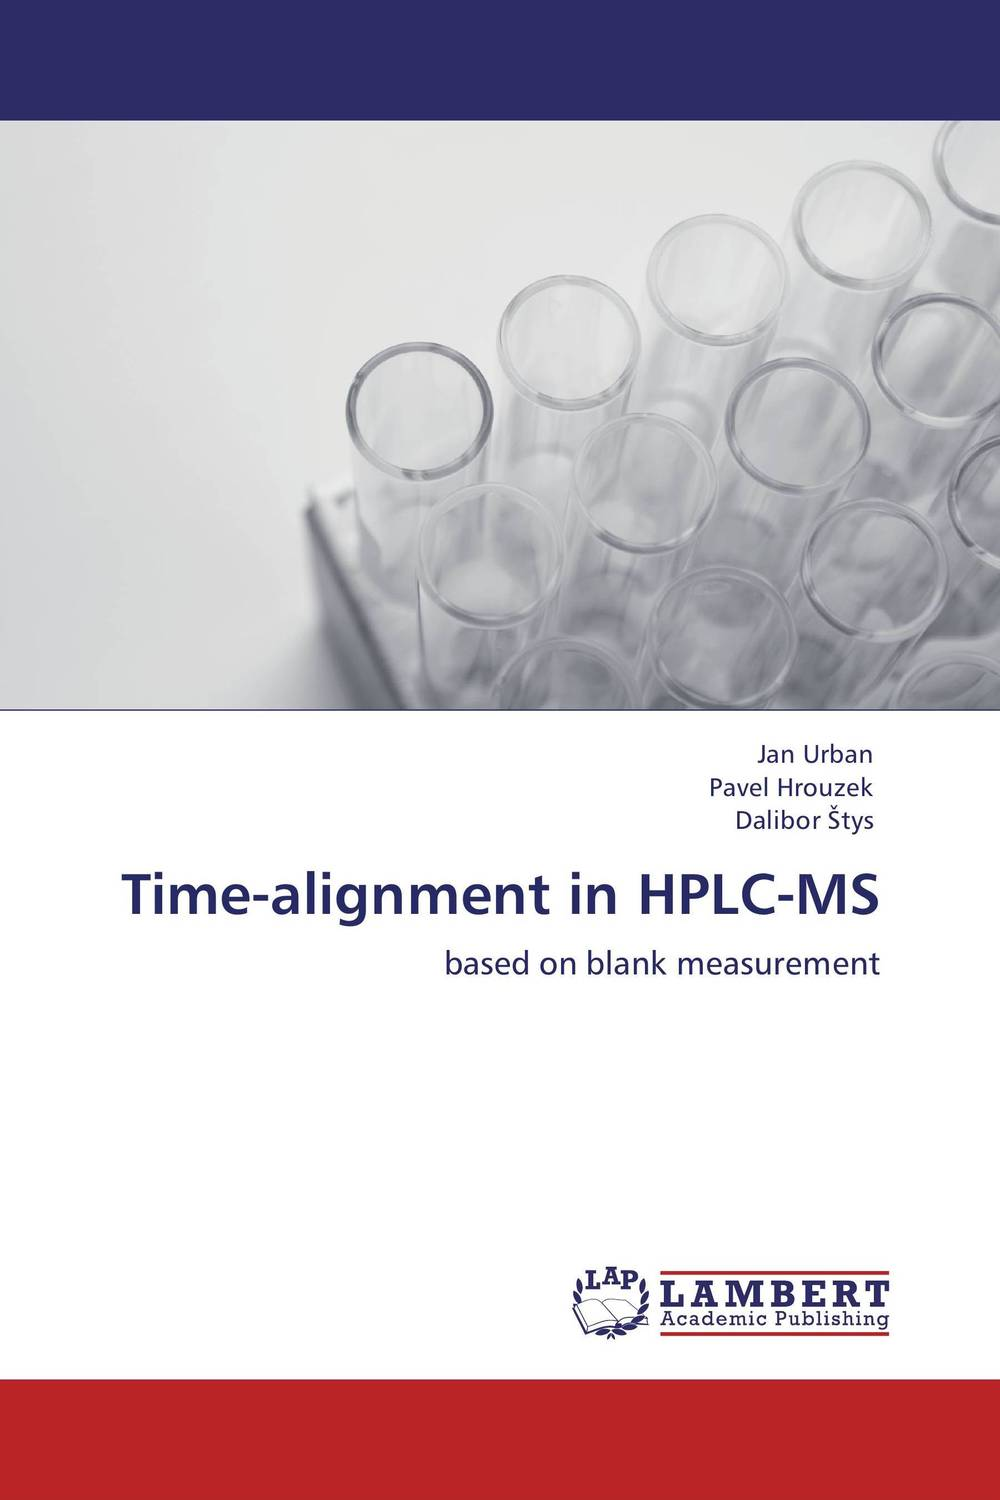 Time-alignment in HPLC-MS